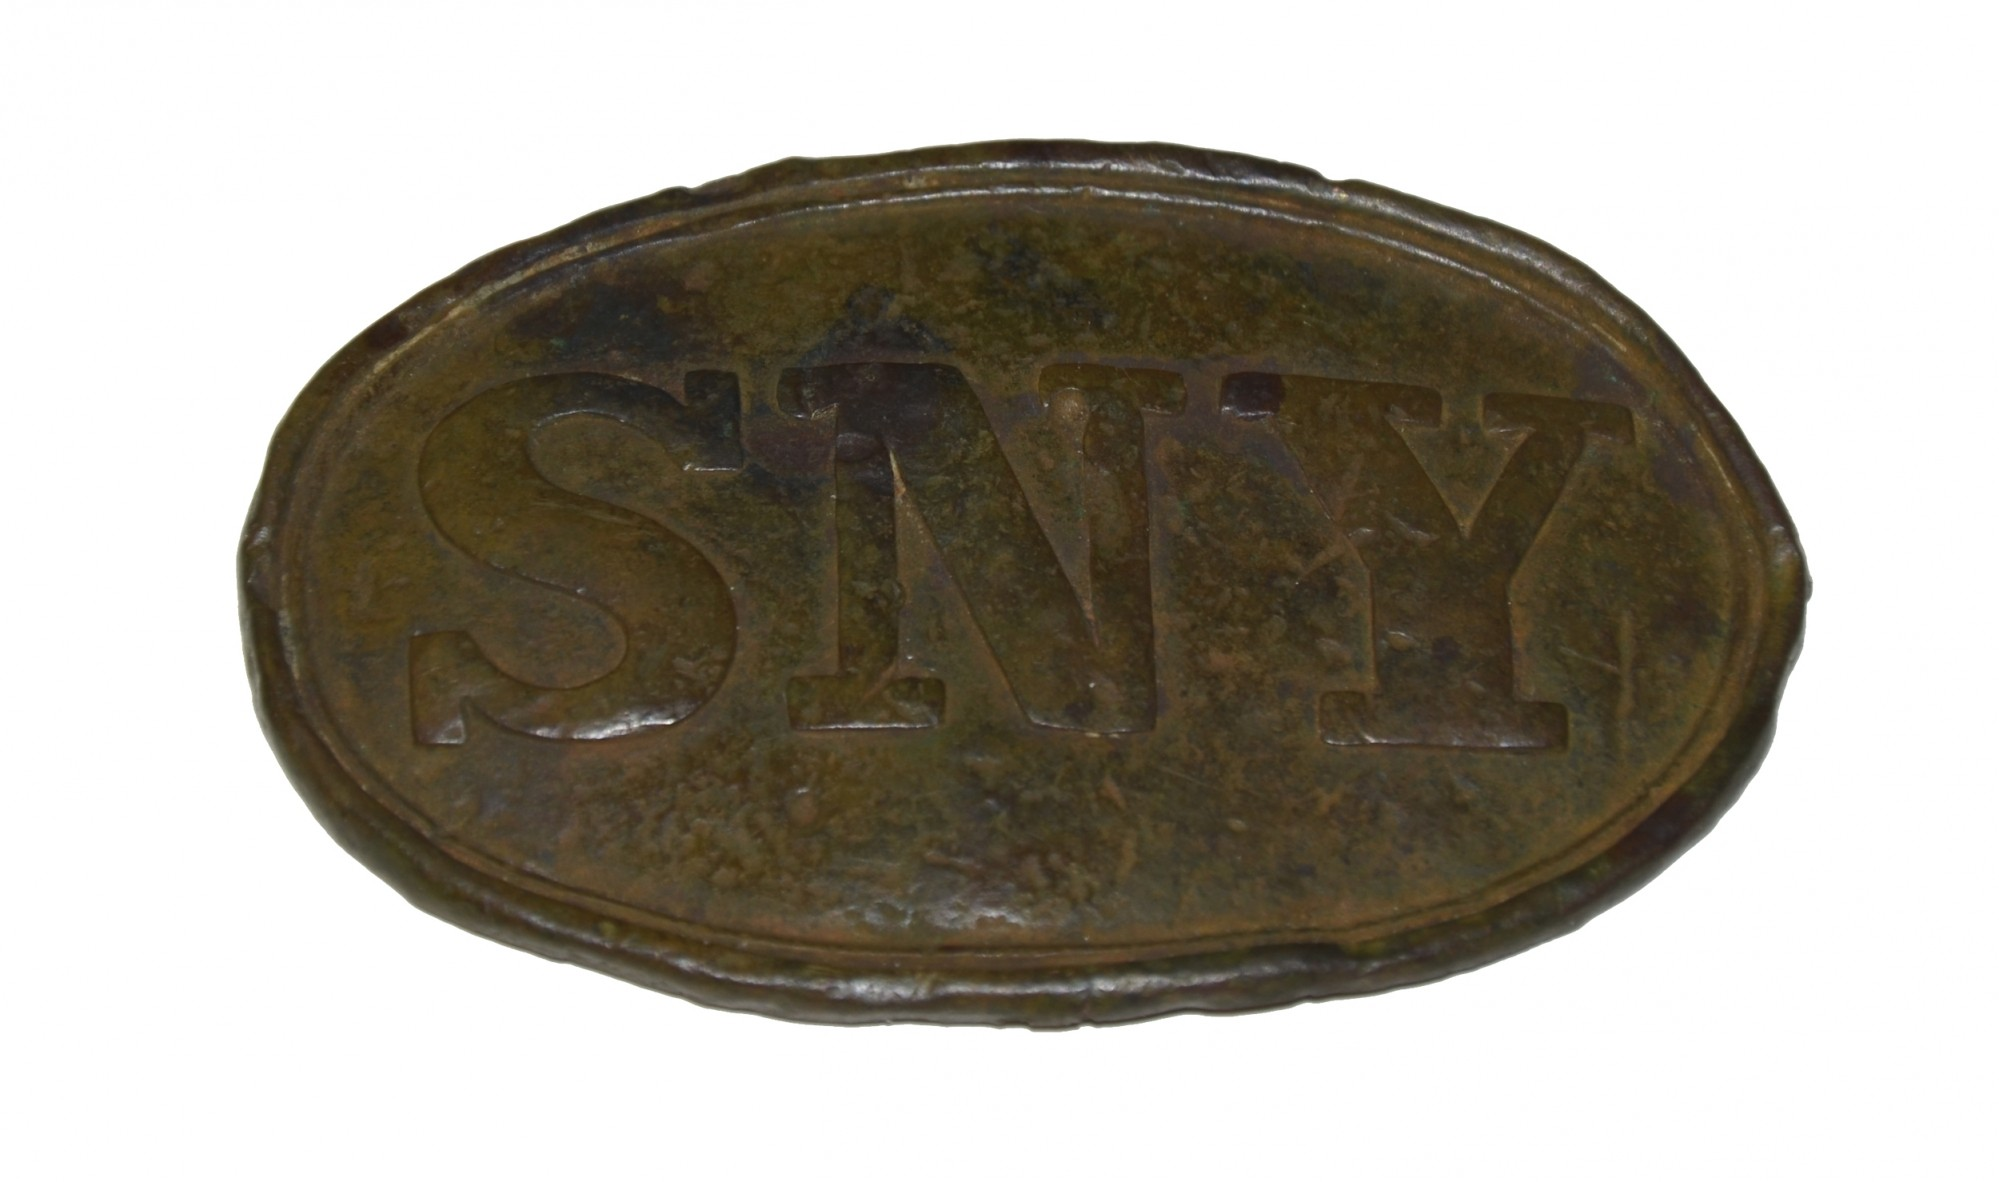 STATE OF NEW YORK CARTRIDGE BOX PLATE RECOVERED AT MANASSAS